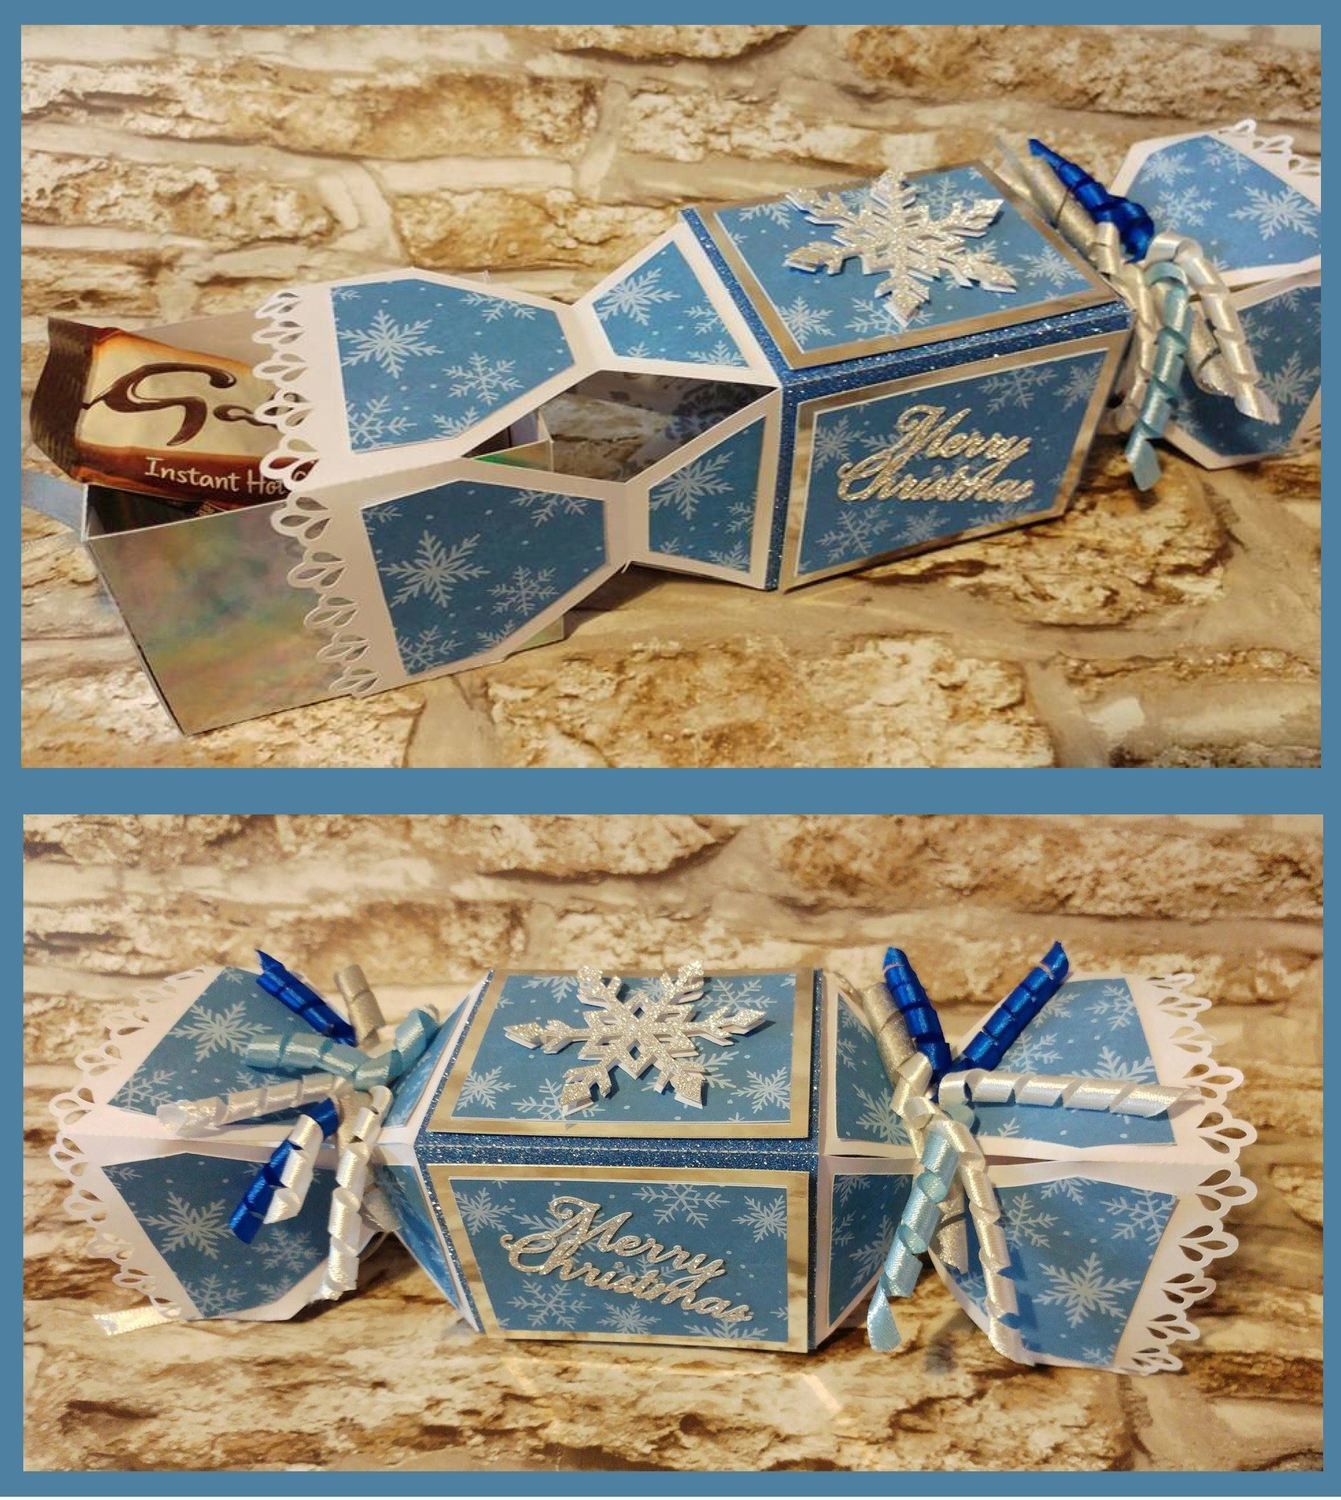 Cracker with a hidden inner box - Snowflake themed  SVG